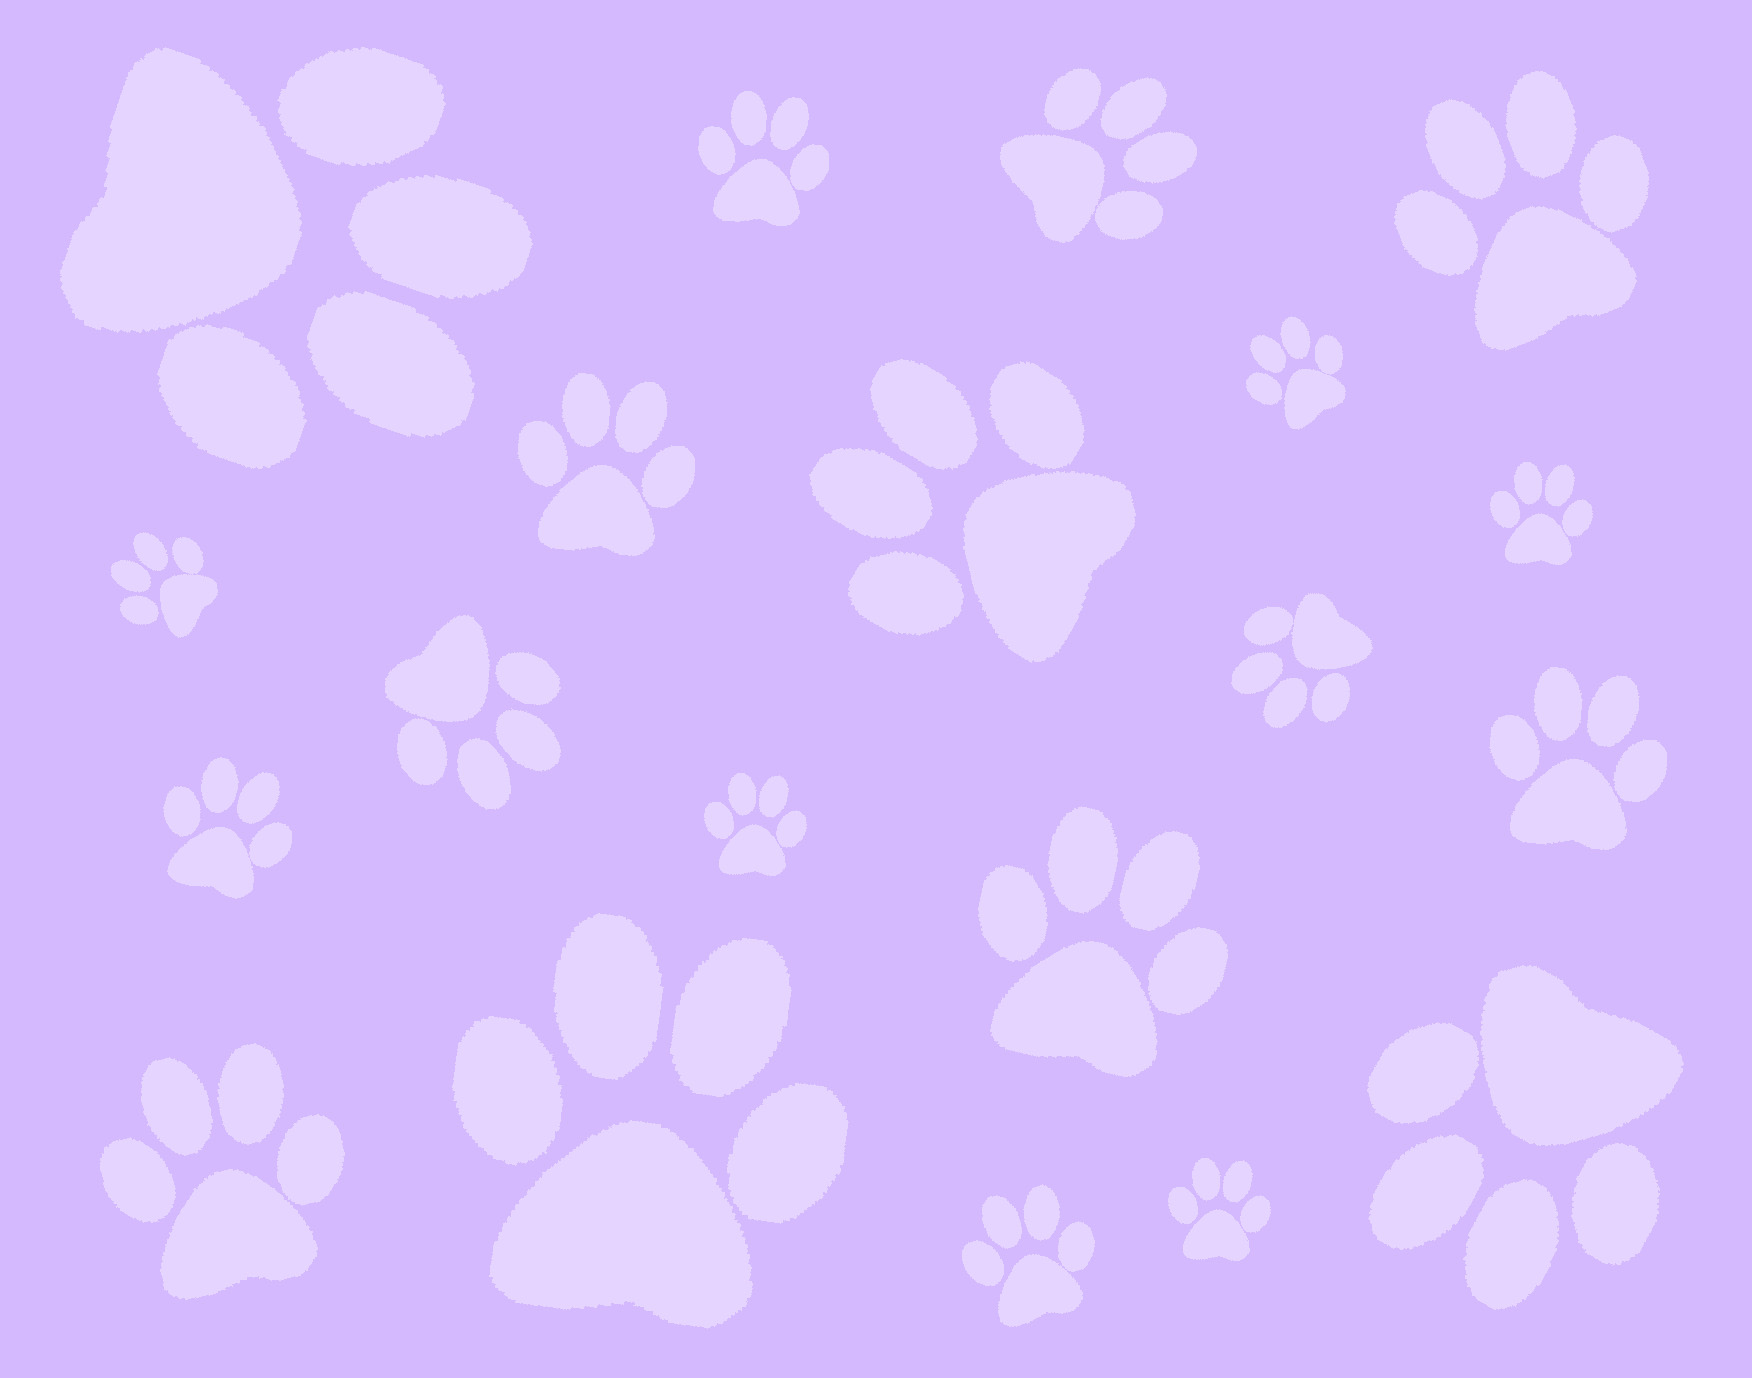 Top Paw Prints In The Wallpapers